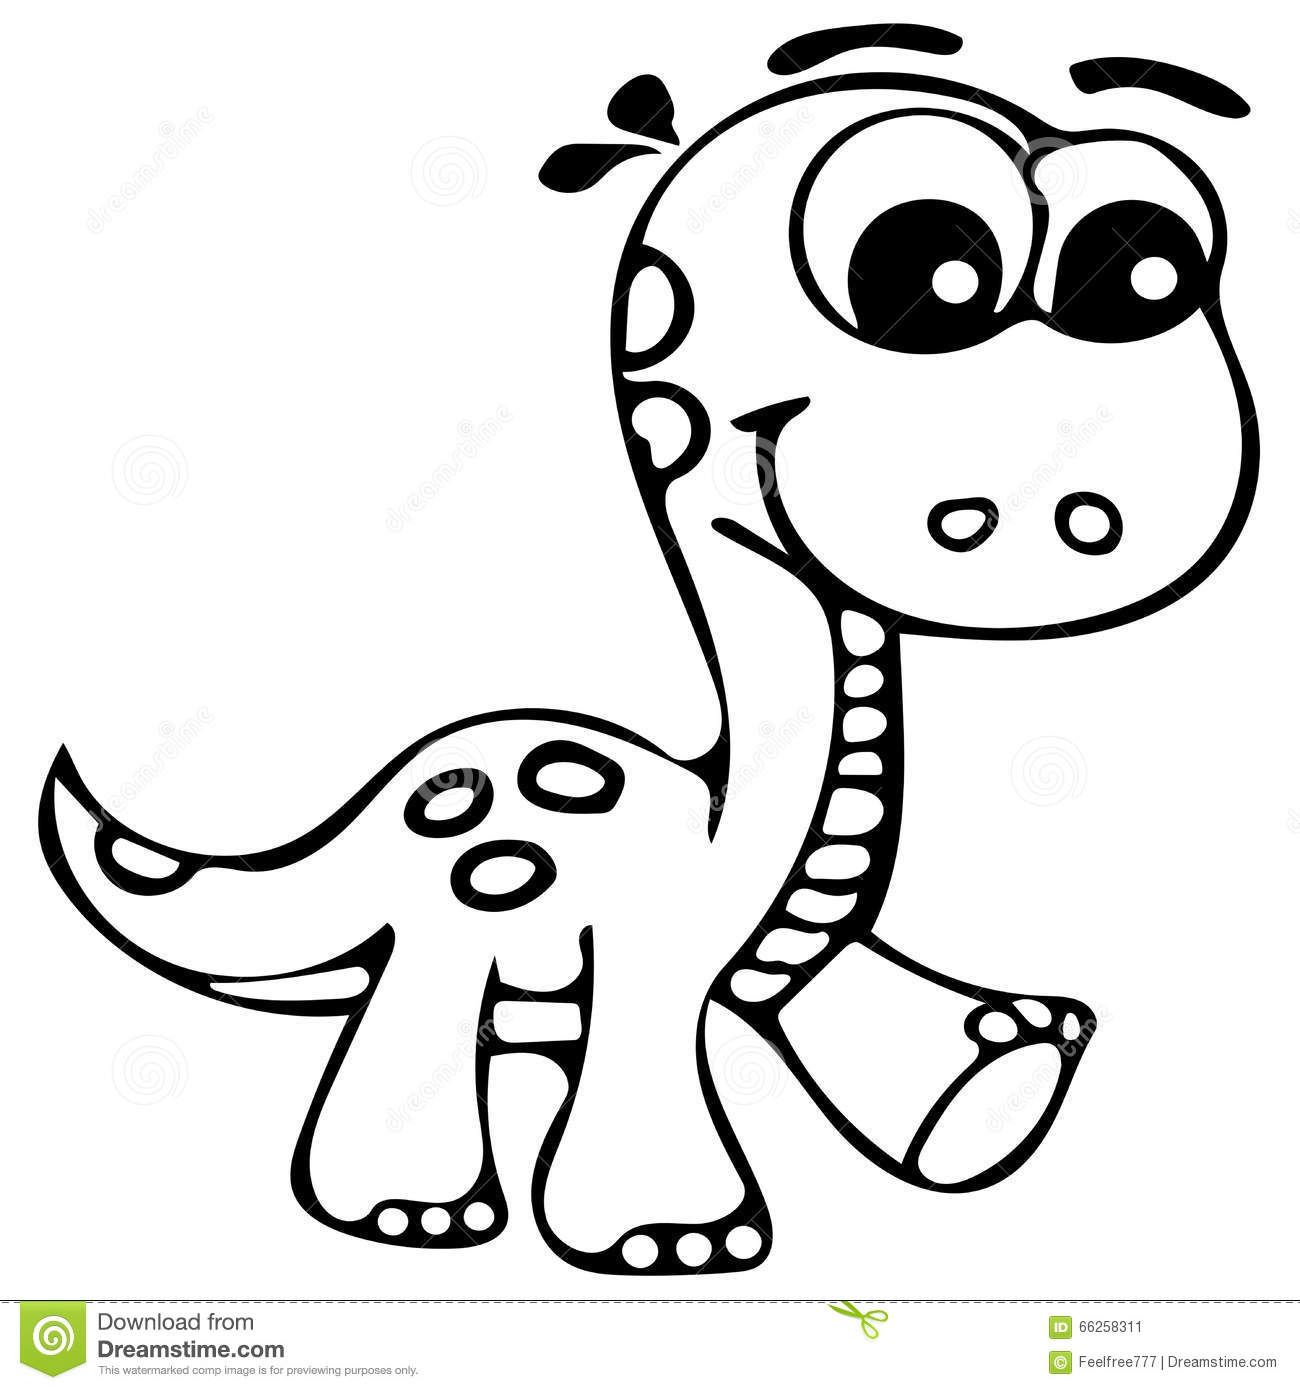 cute dinosaur coloring pages for kids | Cute Dinosaur Coloring Pages - Coloring Home